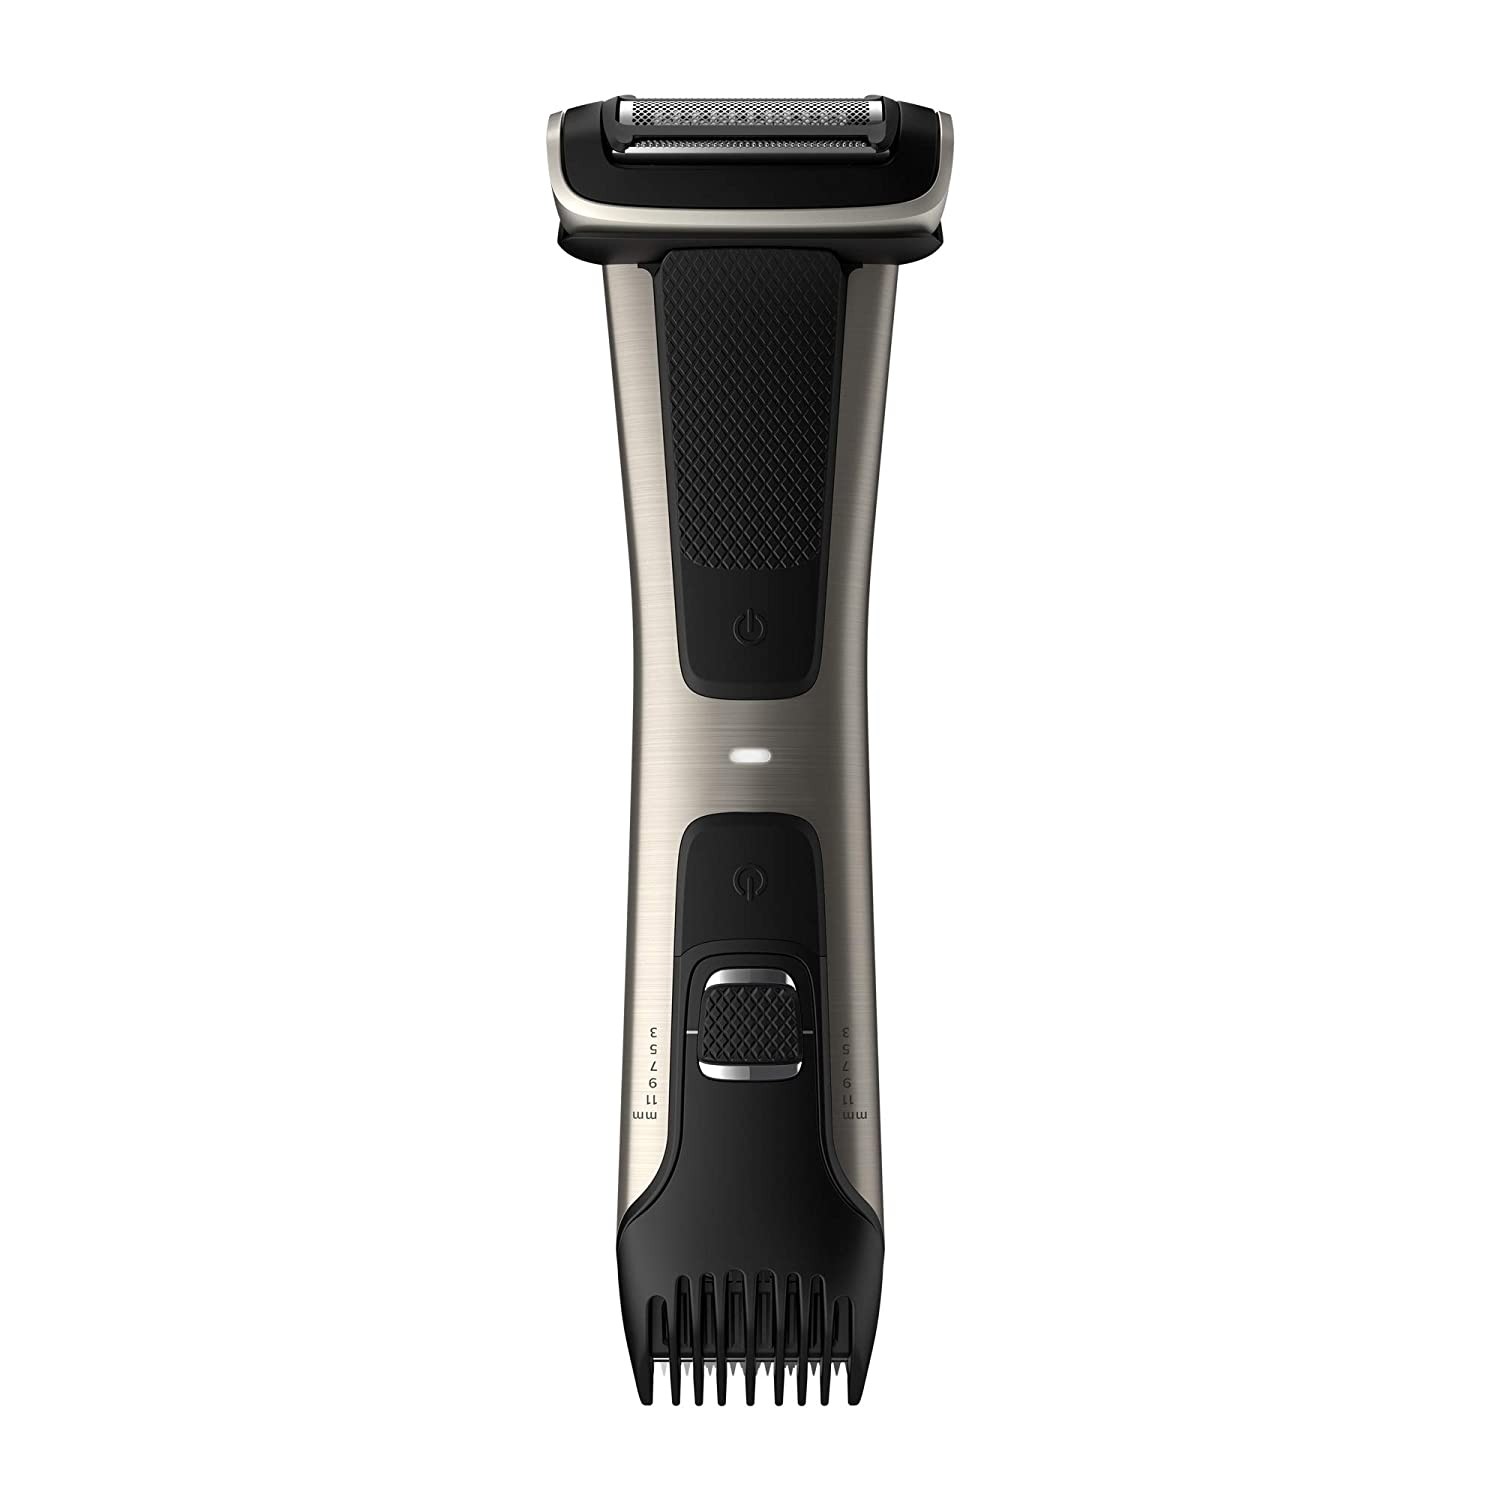 Philips Norelco BG7030/49 Bodygroom Series 7000 review